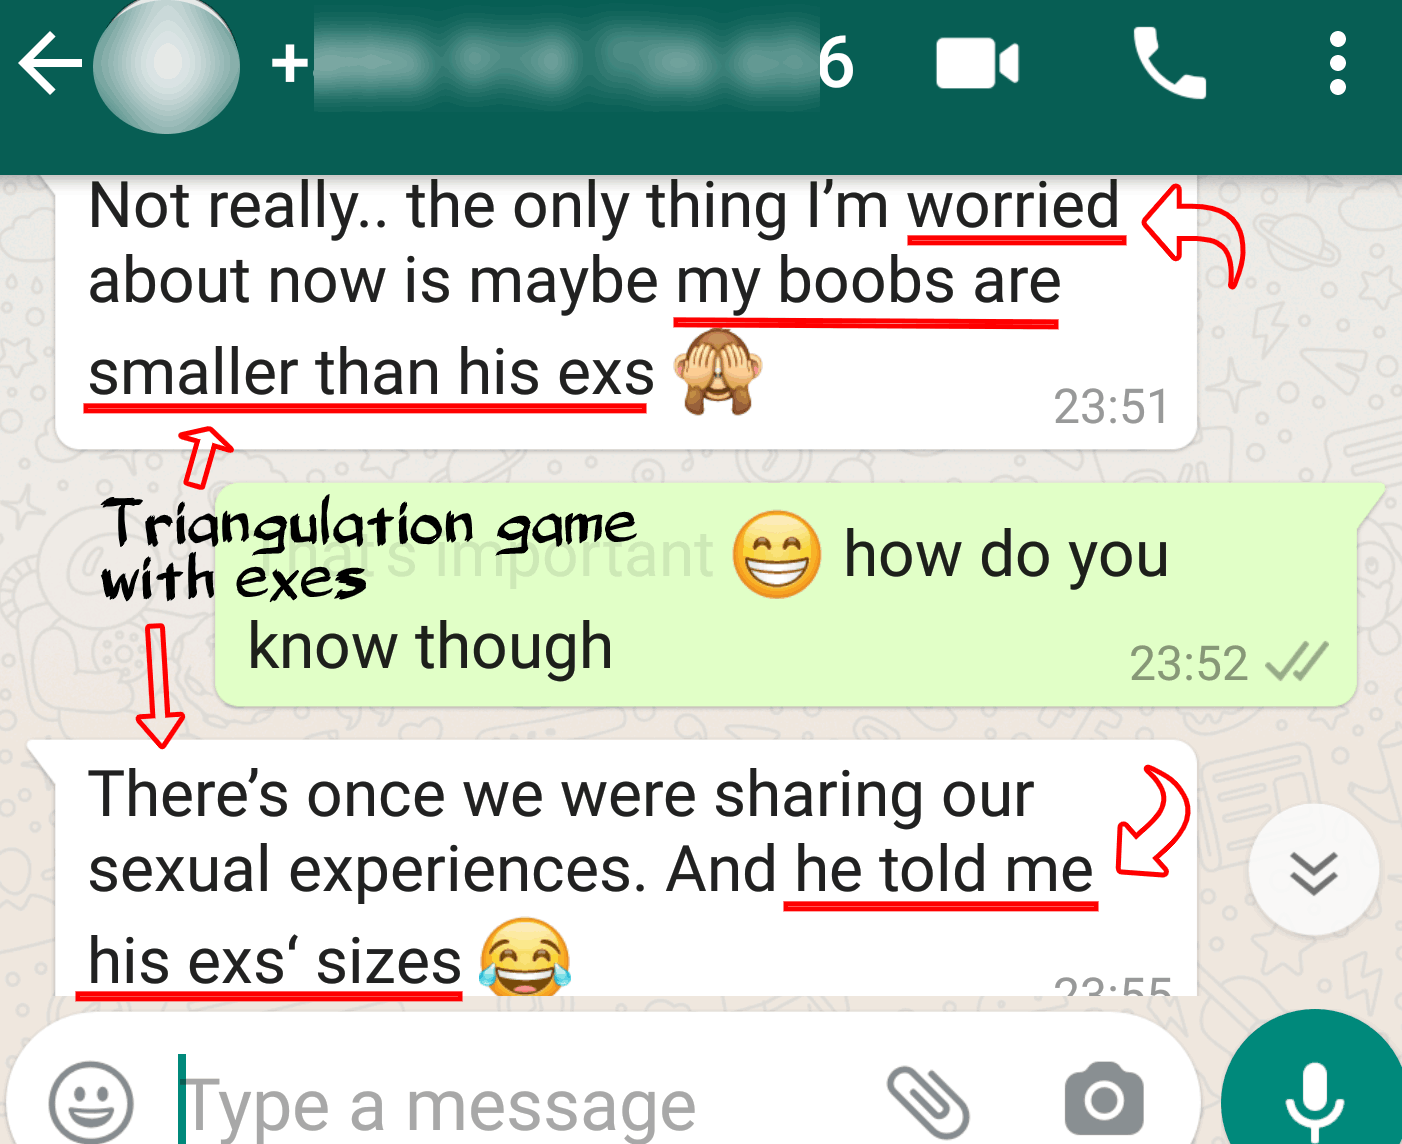 text example of triangulation games men play